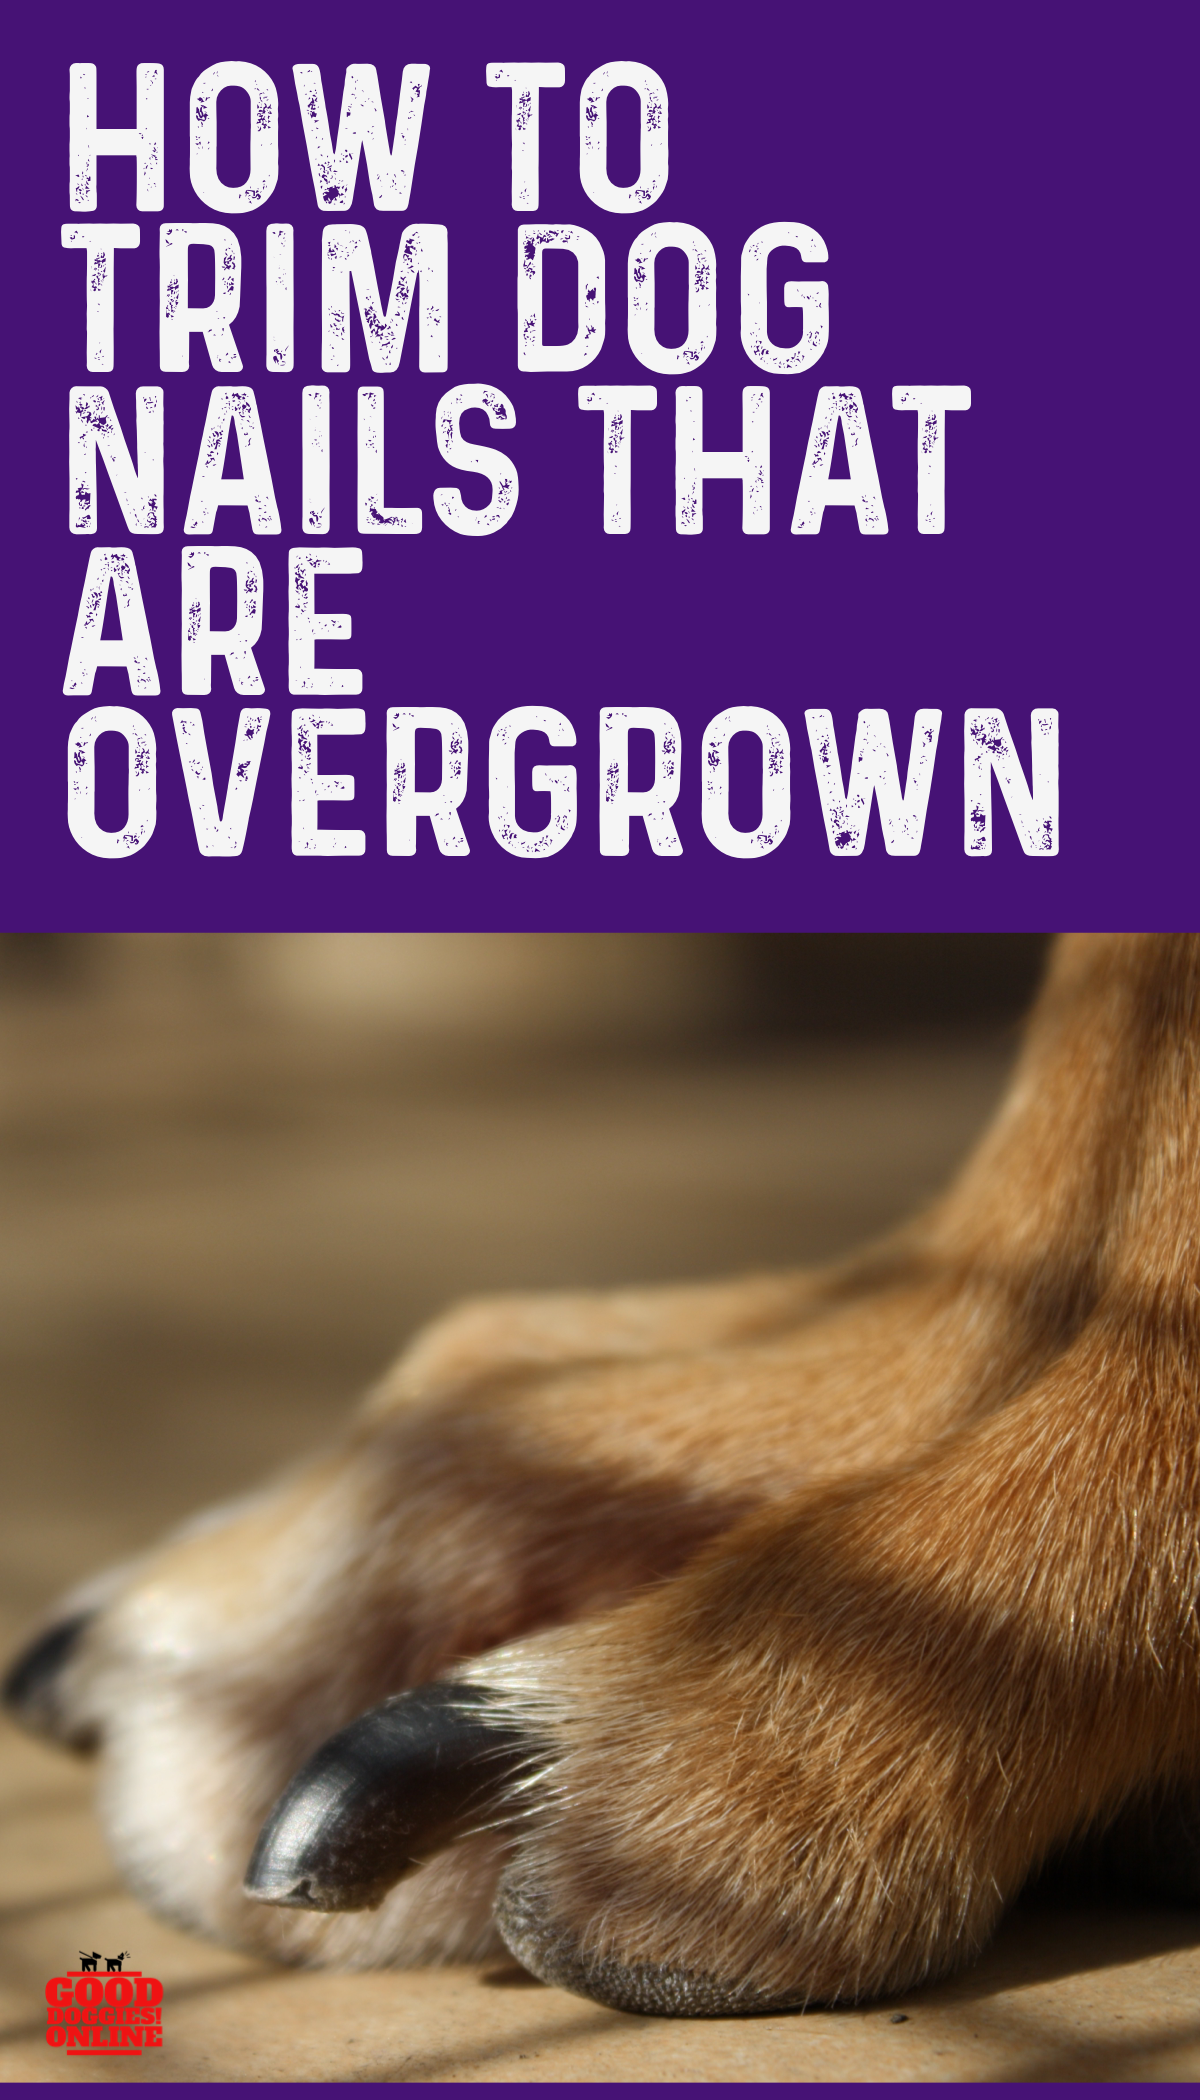 How To Trim Dog Nails That Are Overgrown Complete Guide Good Doggies Online Dog Nails Trimming Dog Nails Good Doggies Online